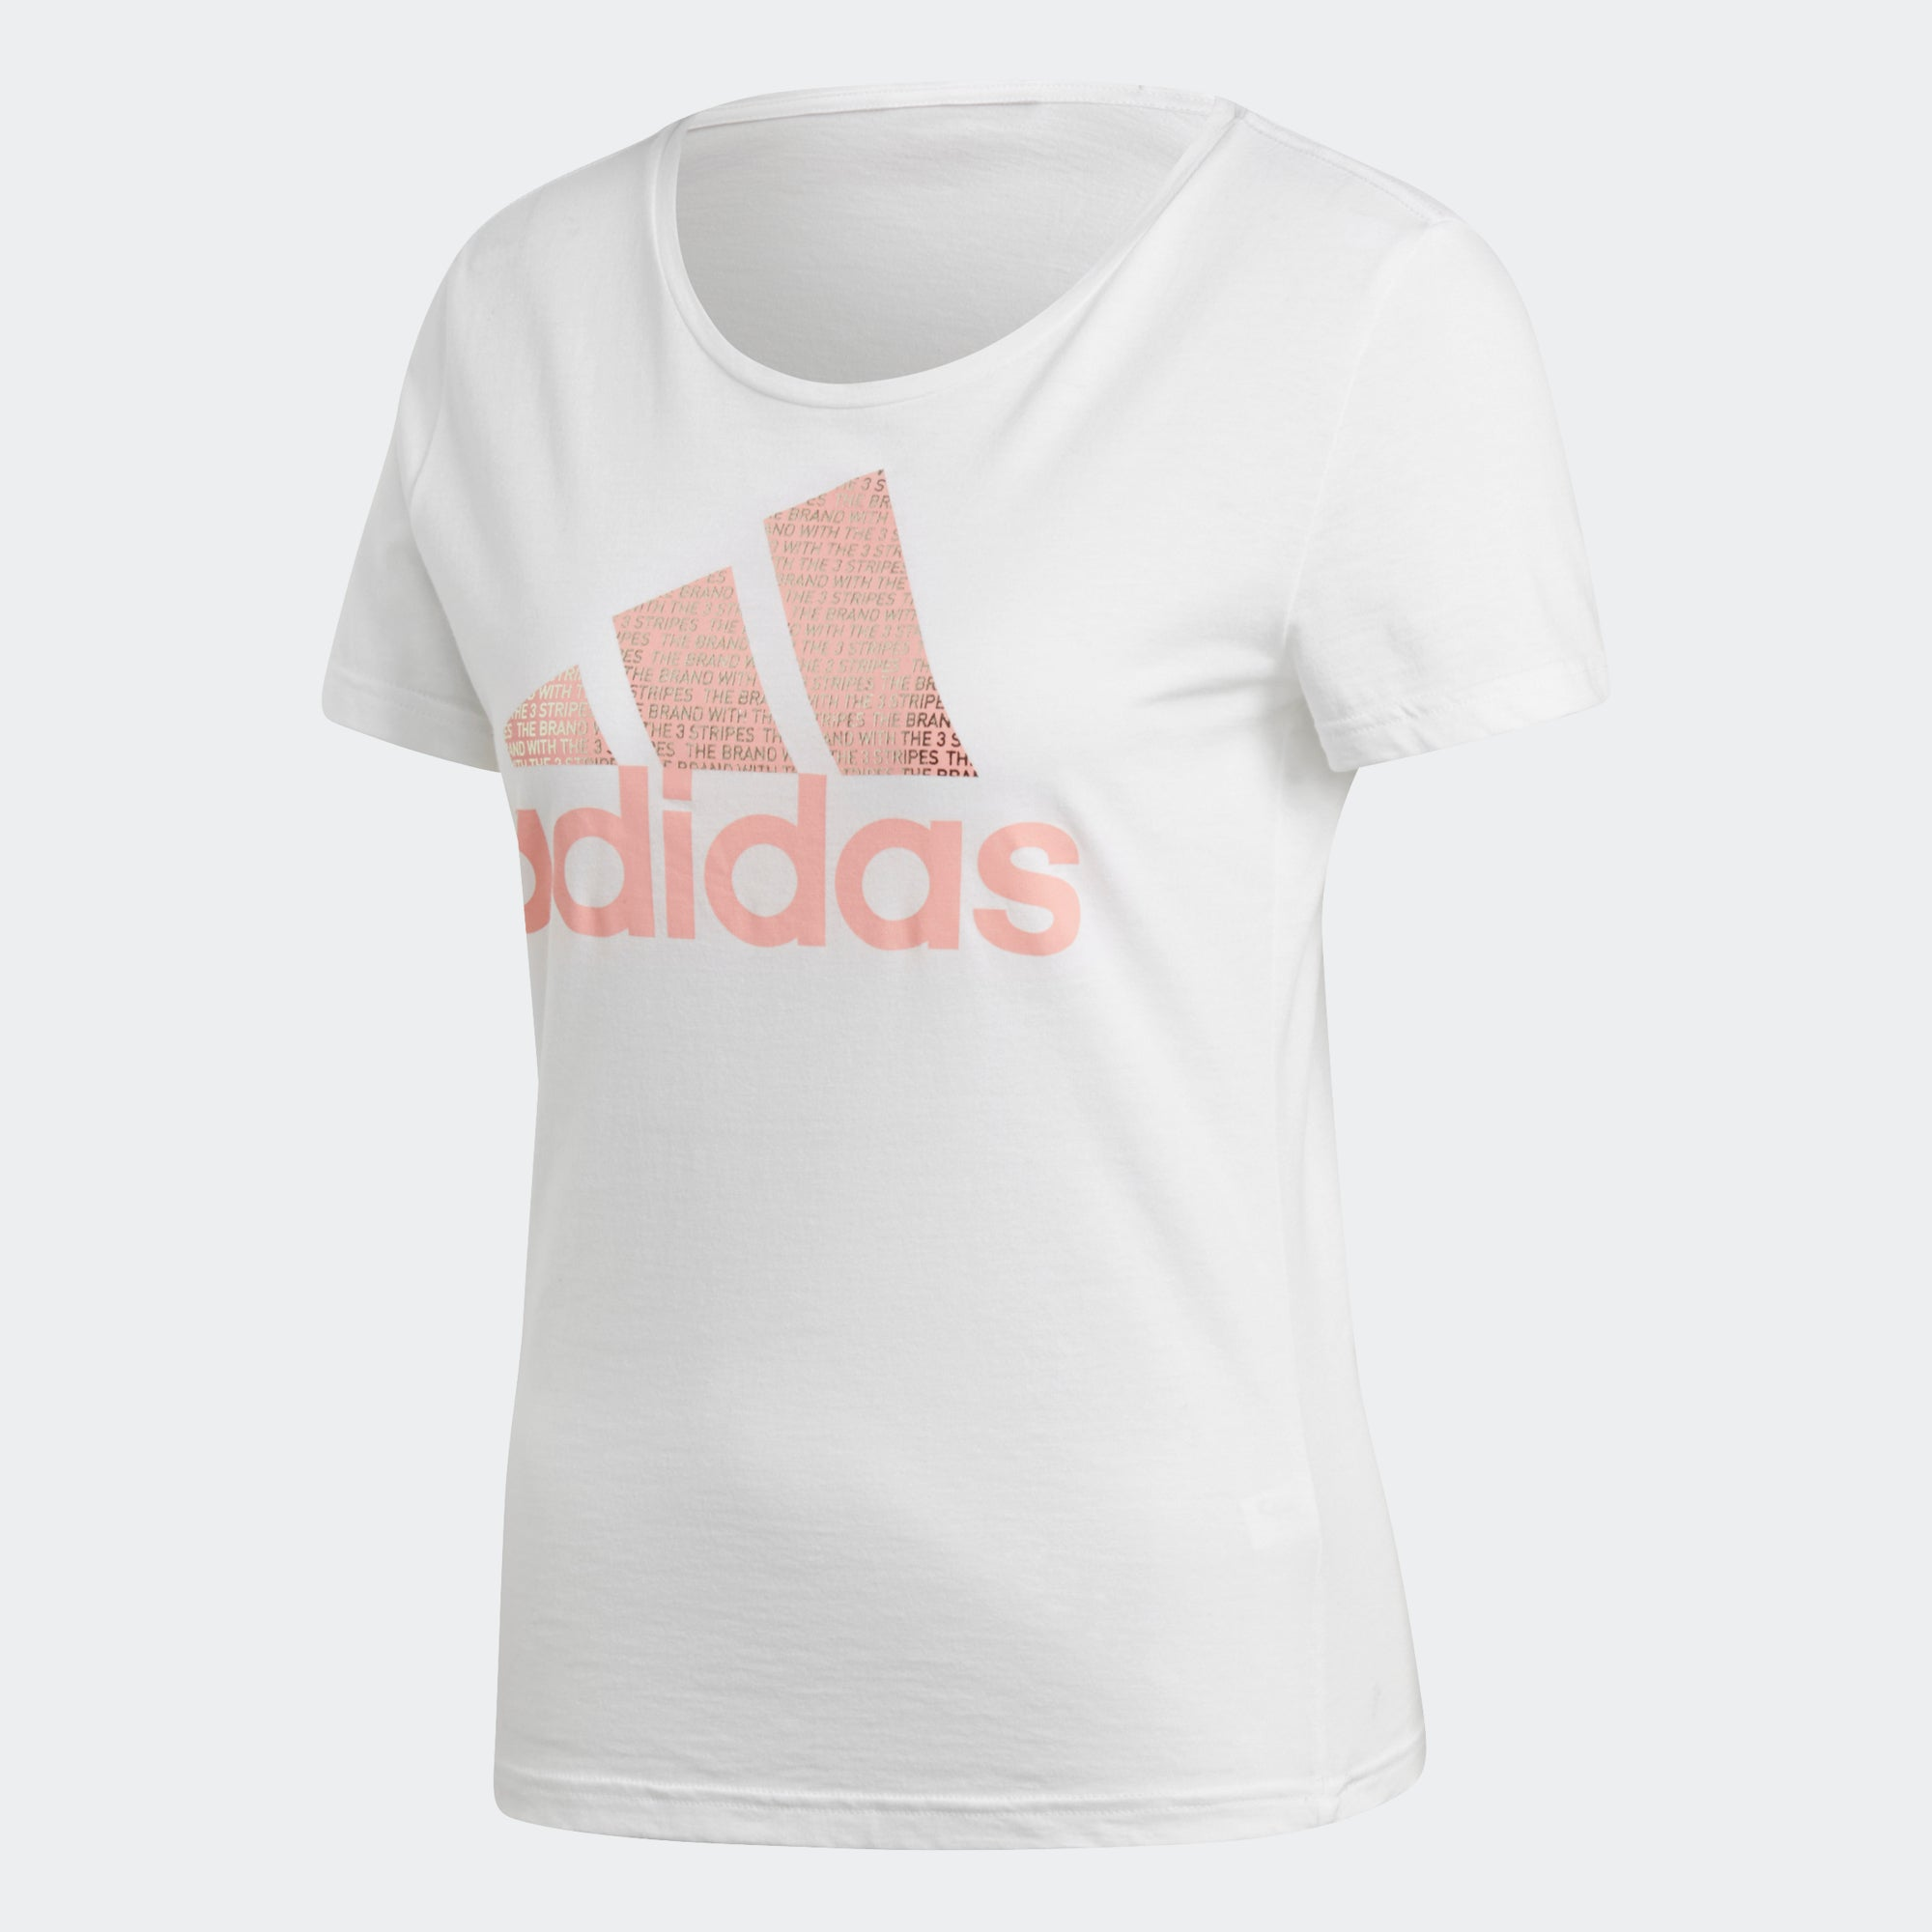 meet d5f70 c5ac8 Buy adidas Women Foil Text Badge of Sports Tee, White Online in Singapore   Royal Sporting House